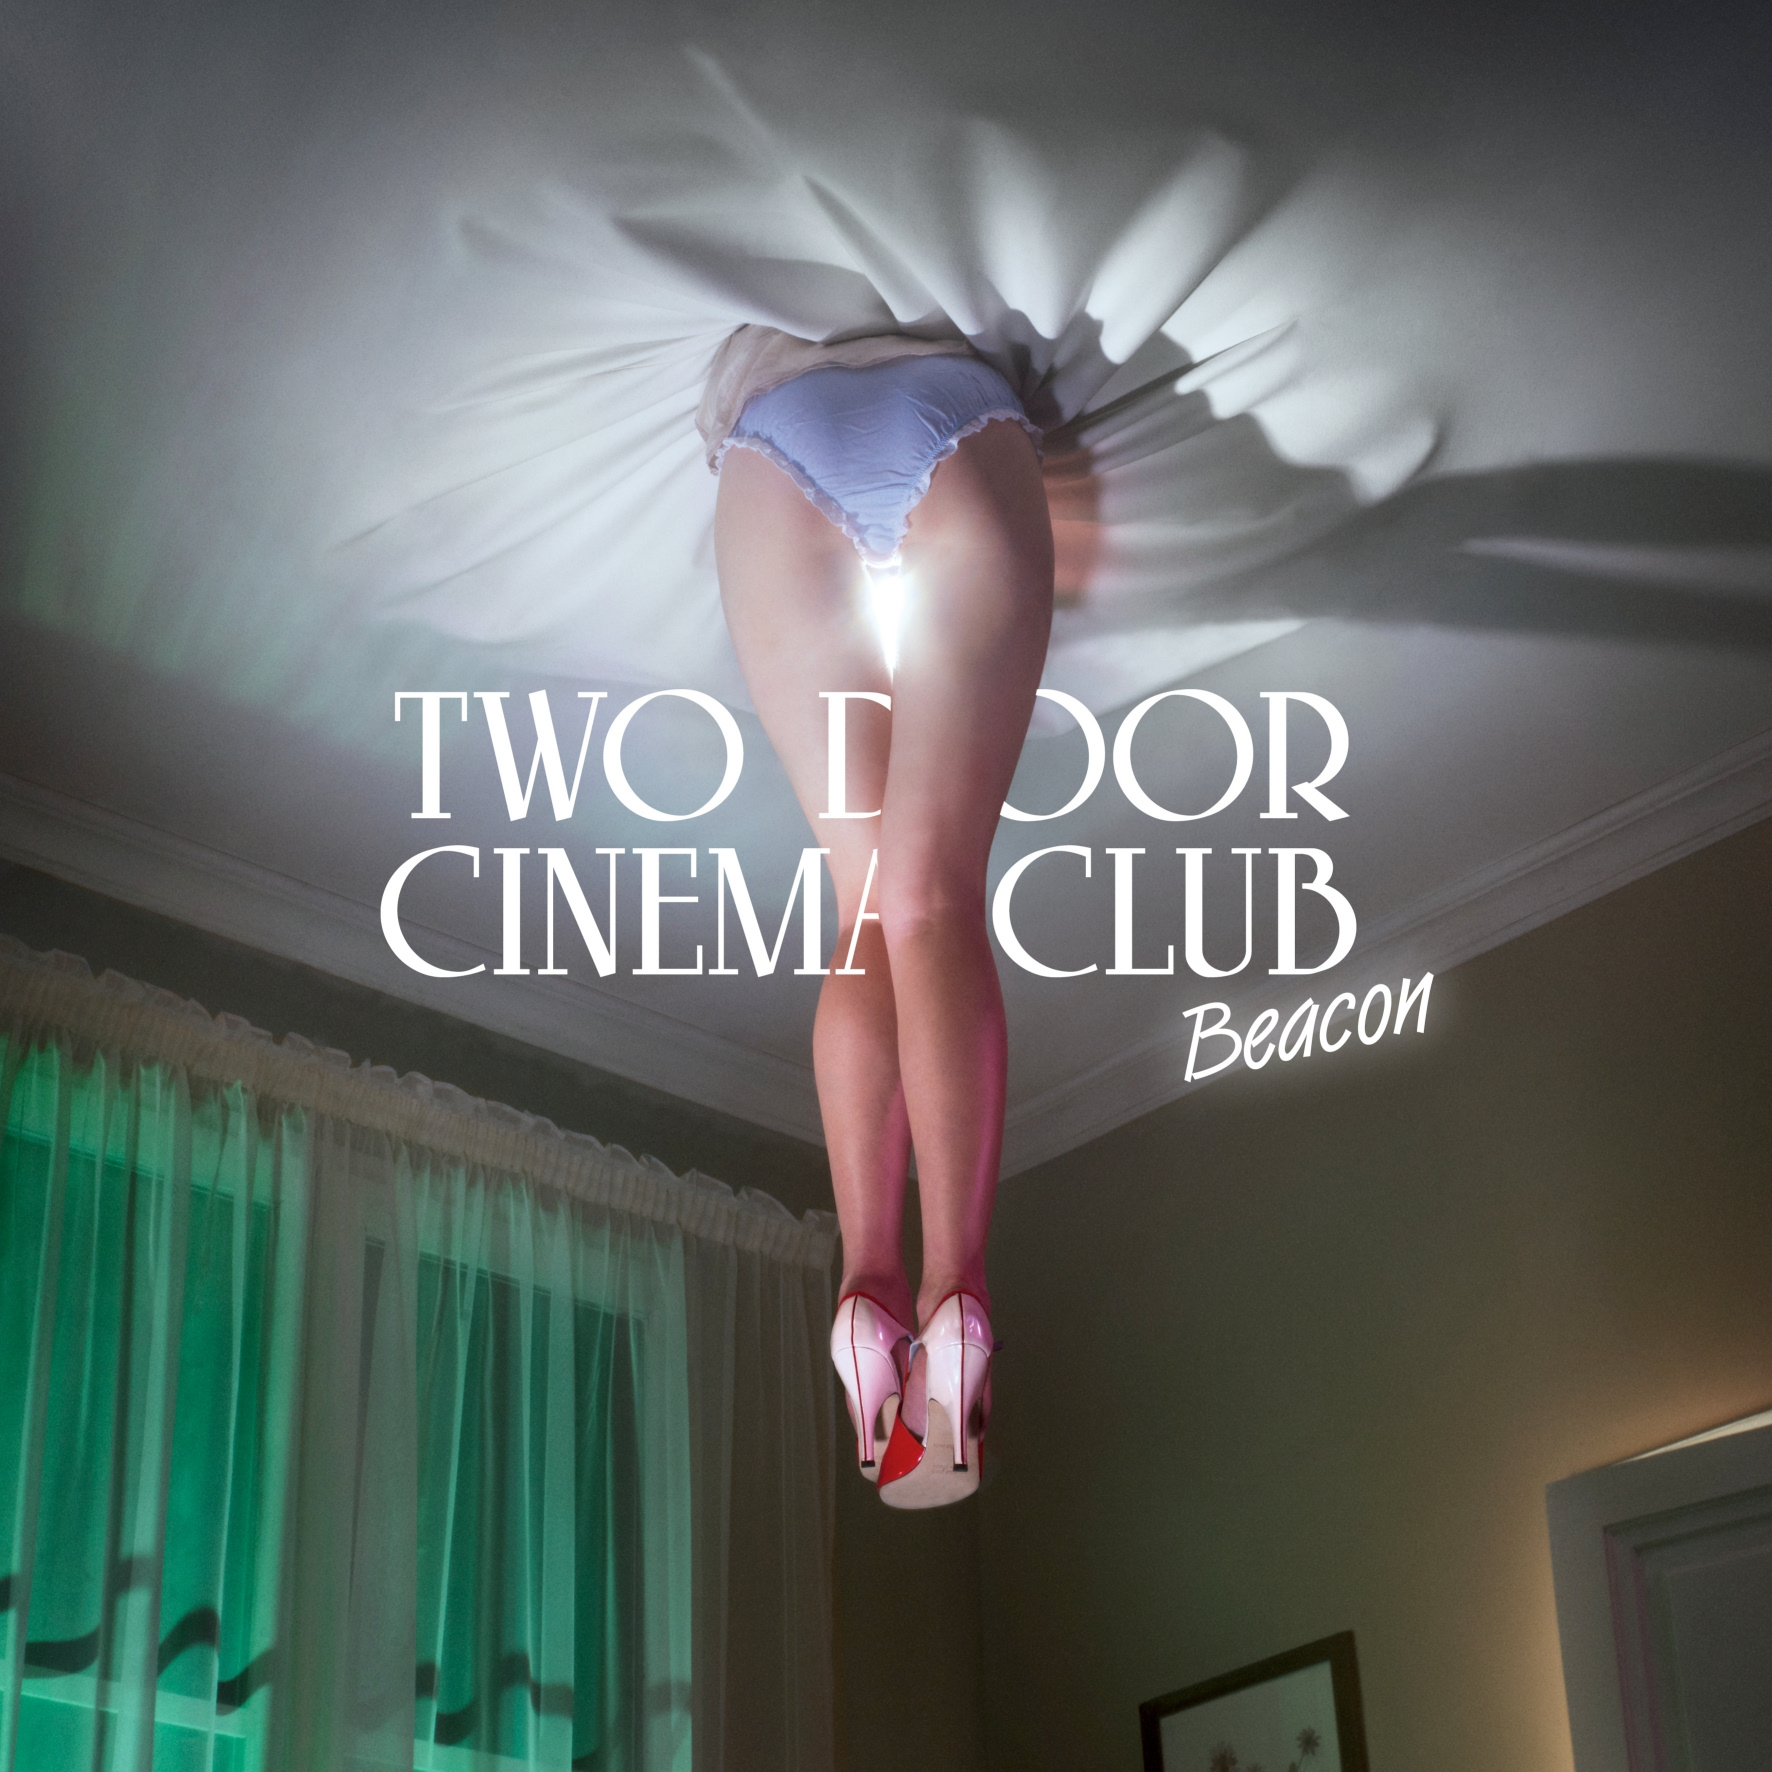 Resultado de imagen para beacon two door cinema club